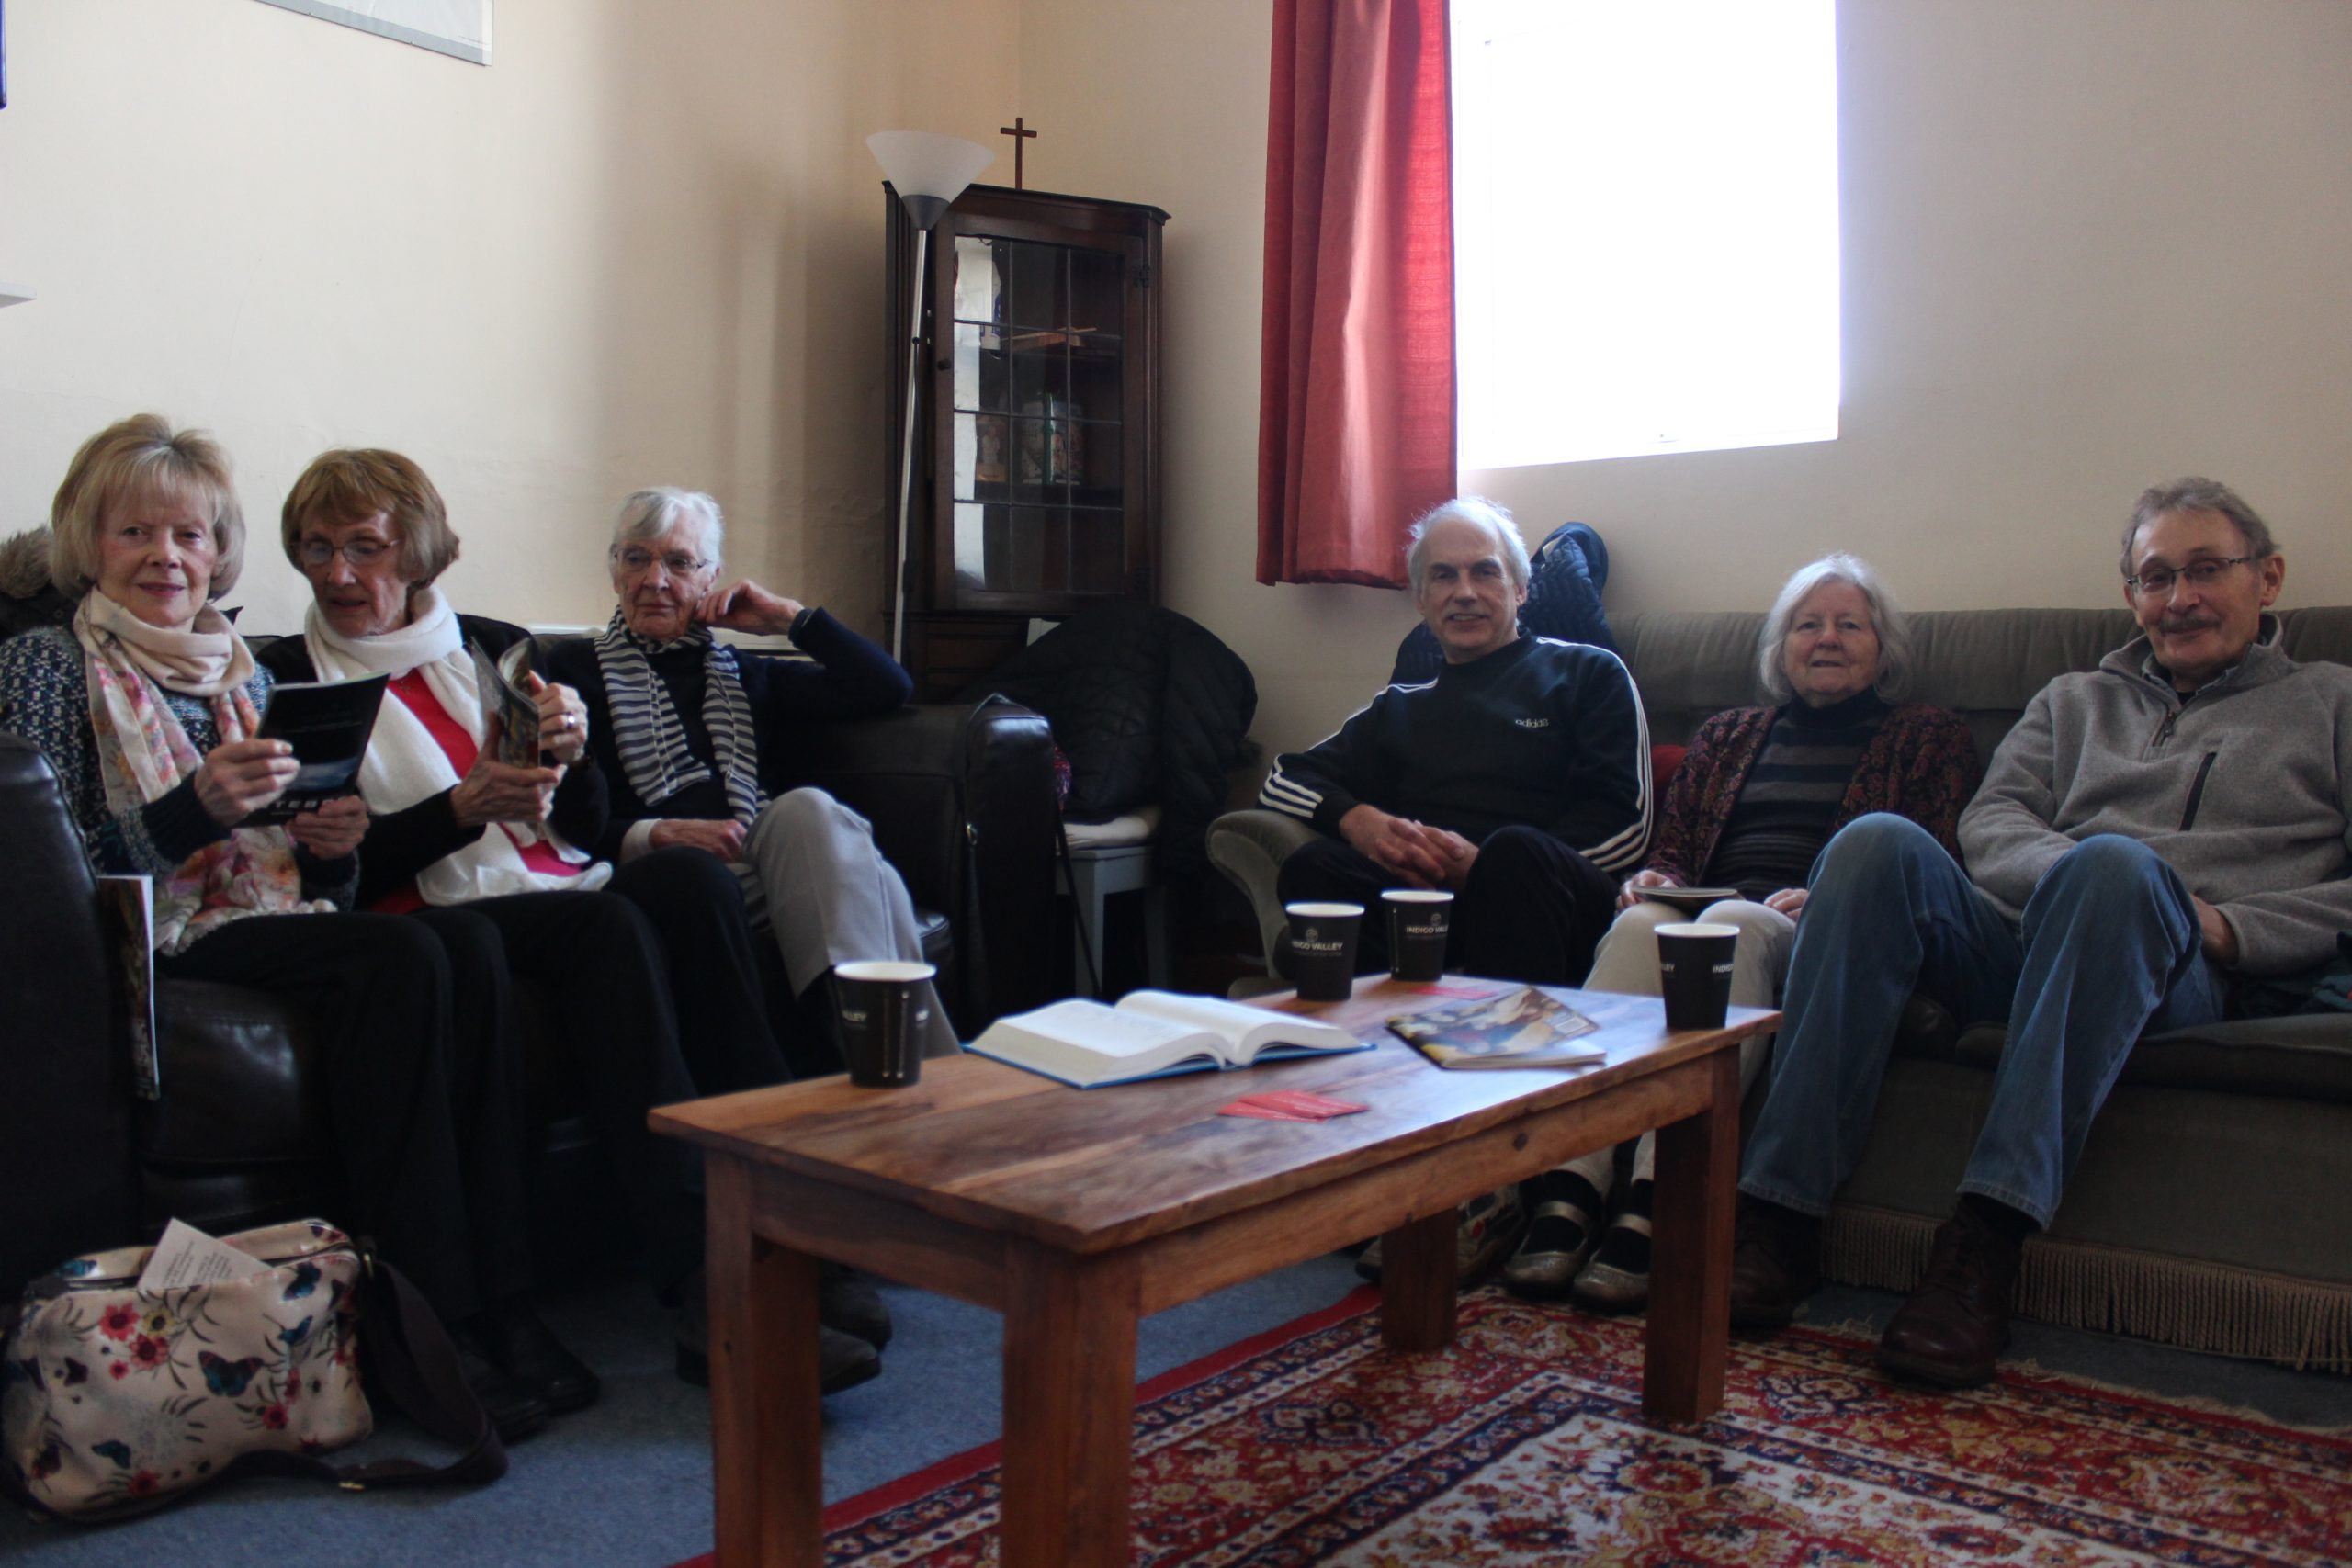 Catholic Groups & Projects in Brighton